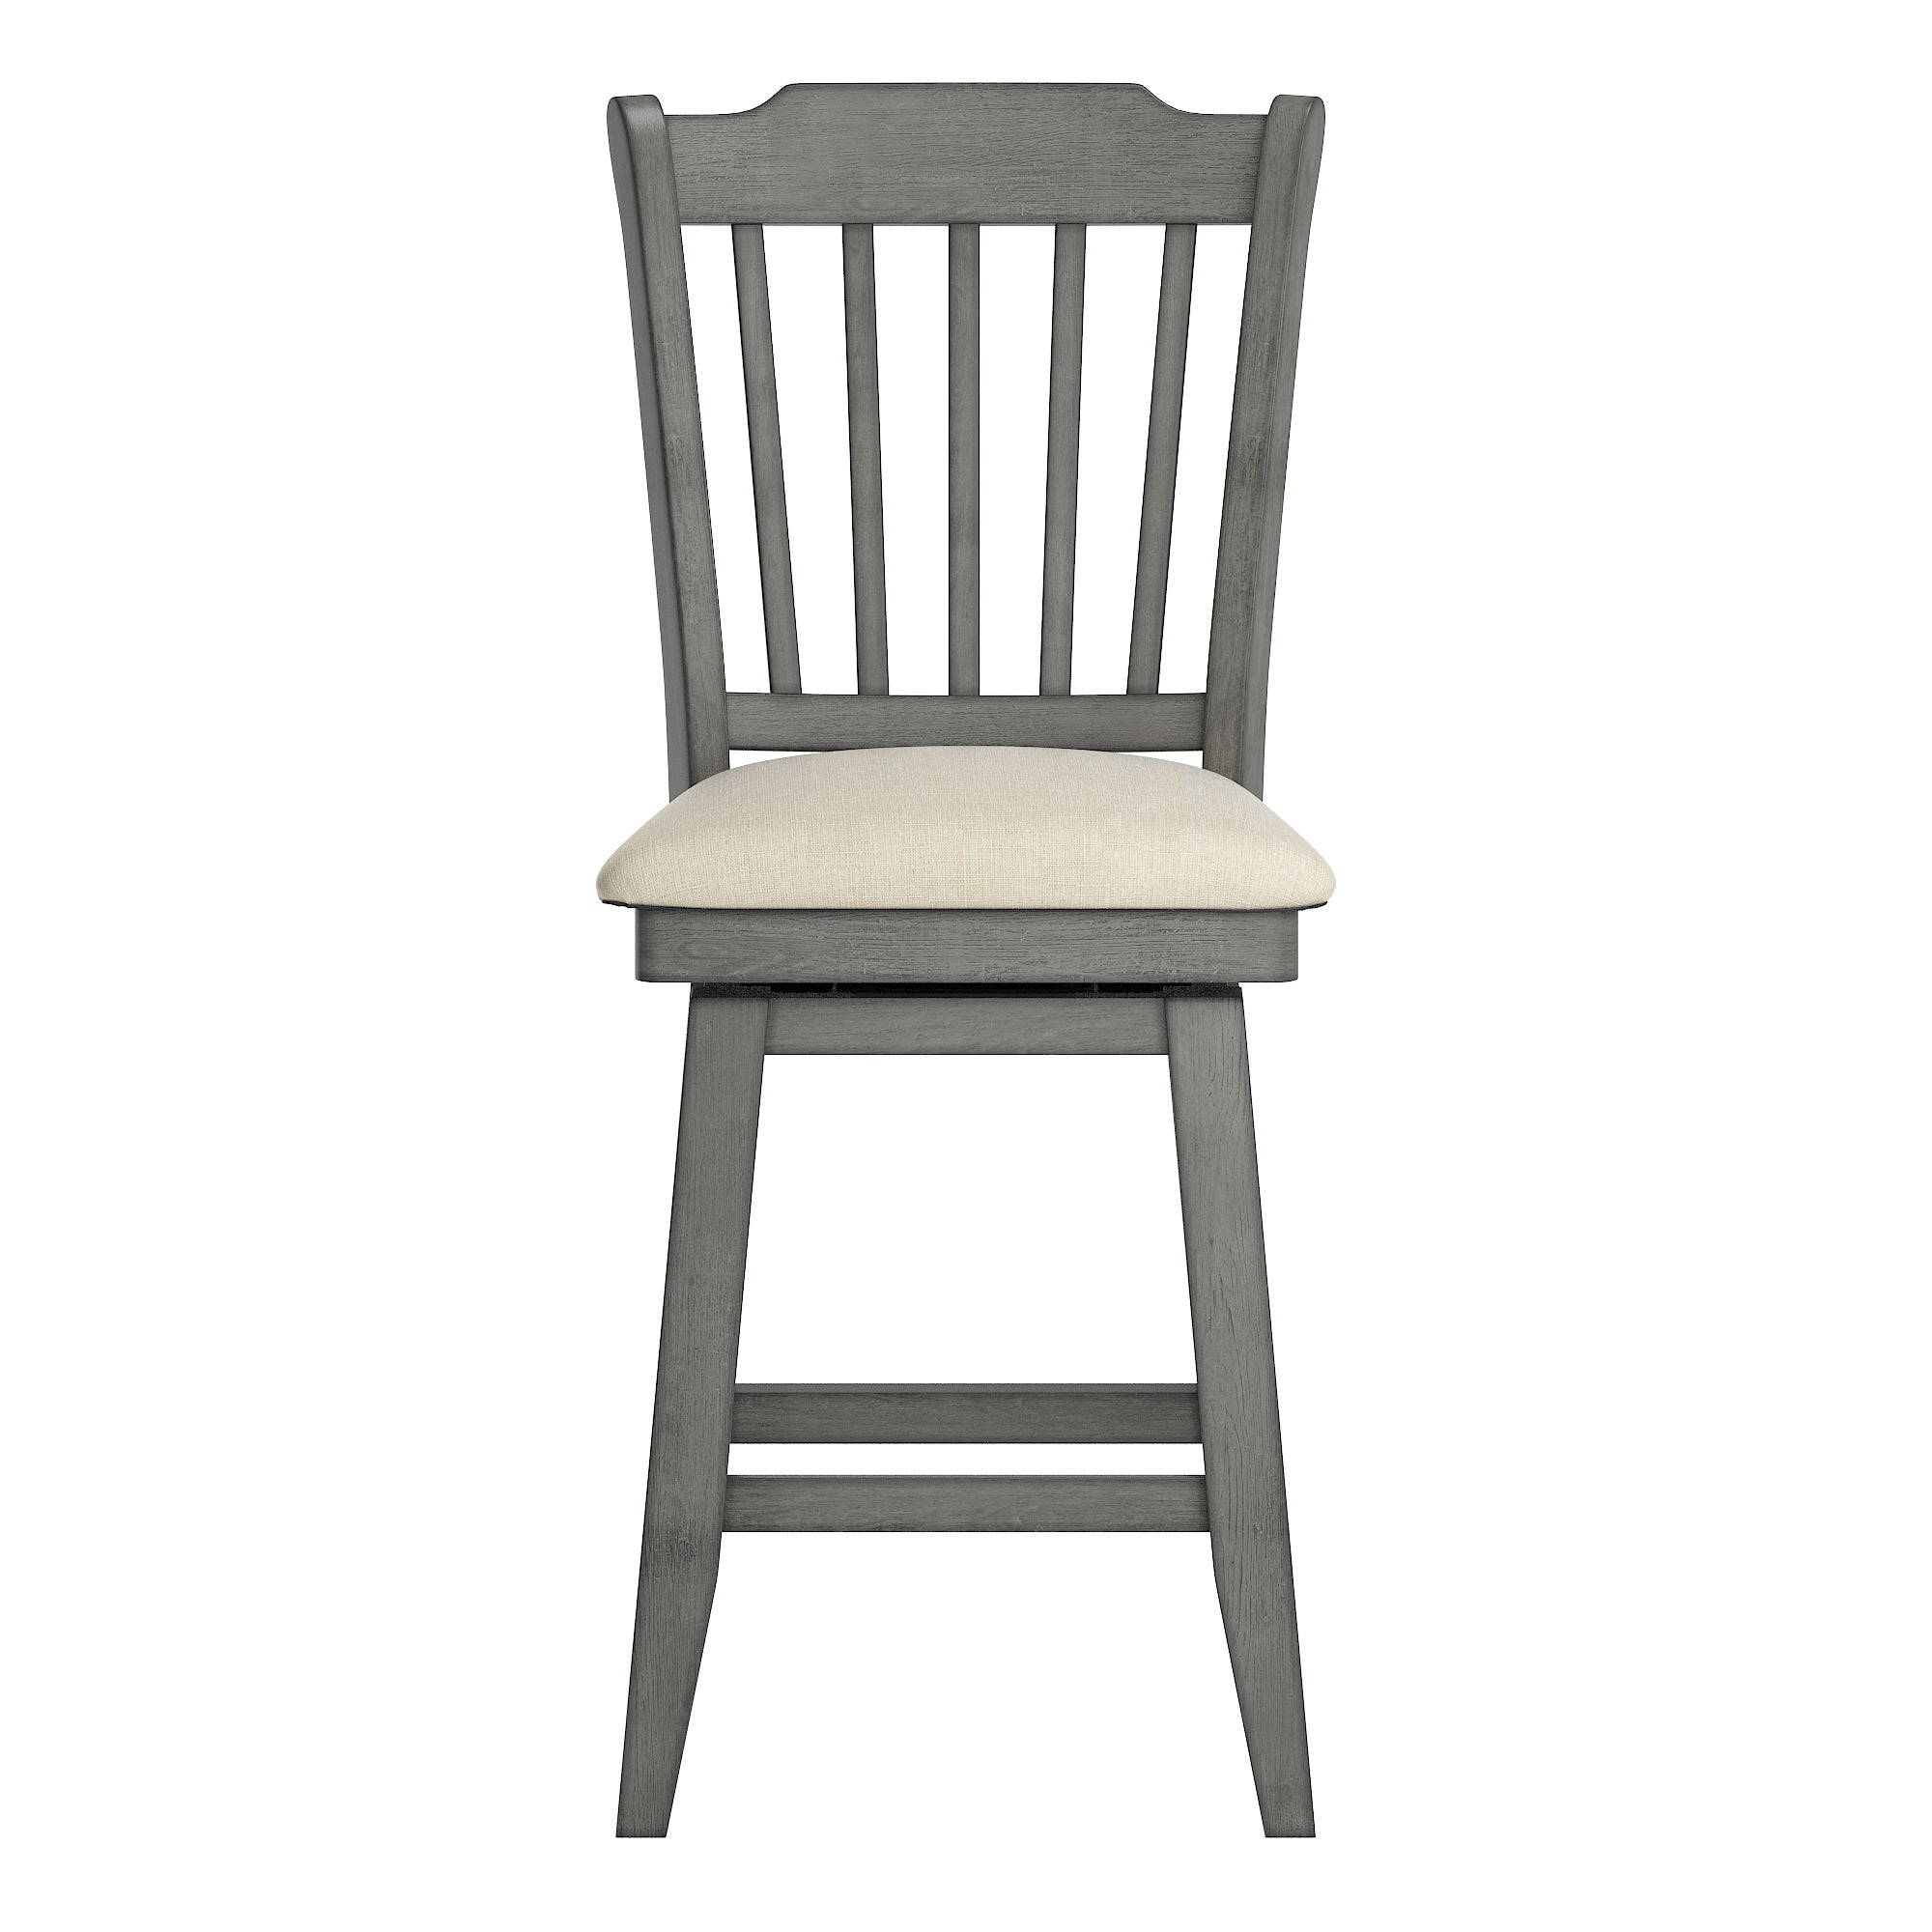 Slat Back Counter Height Wood Swivel Chair - Antique Grey